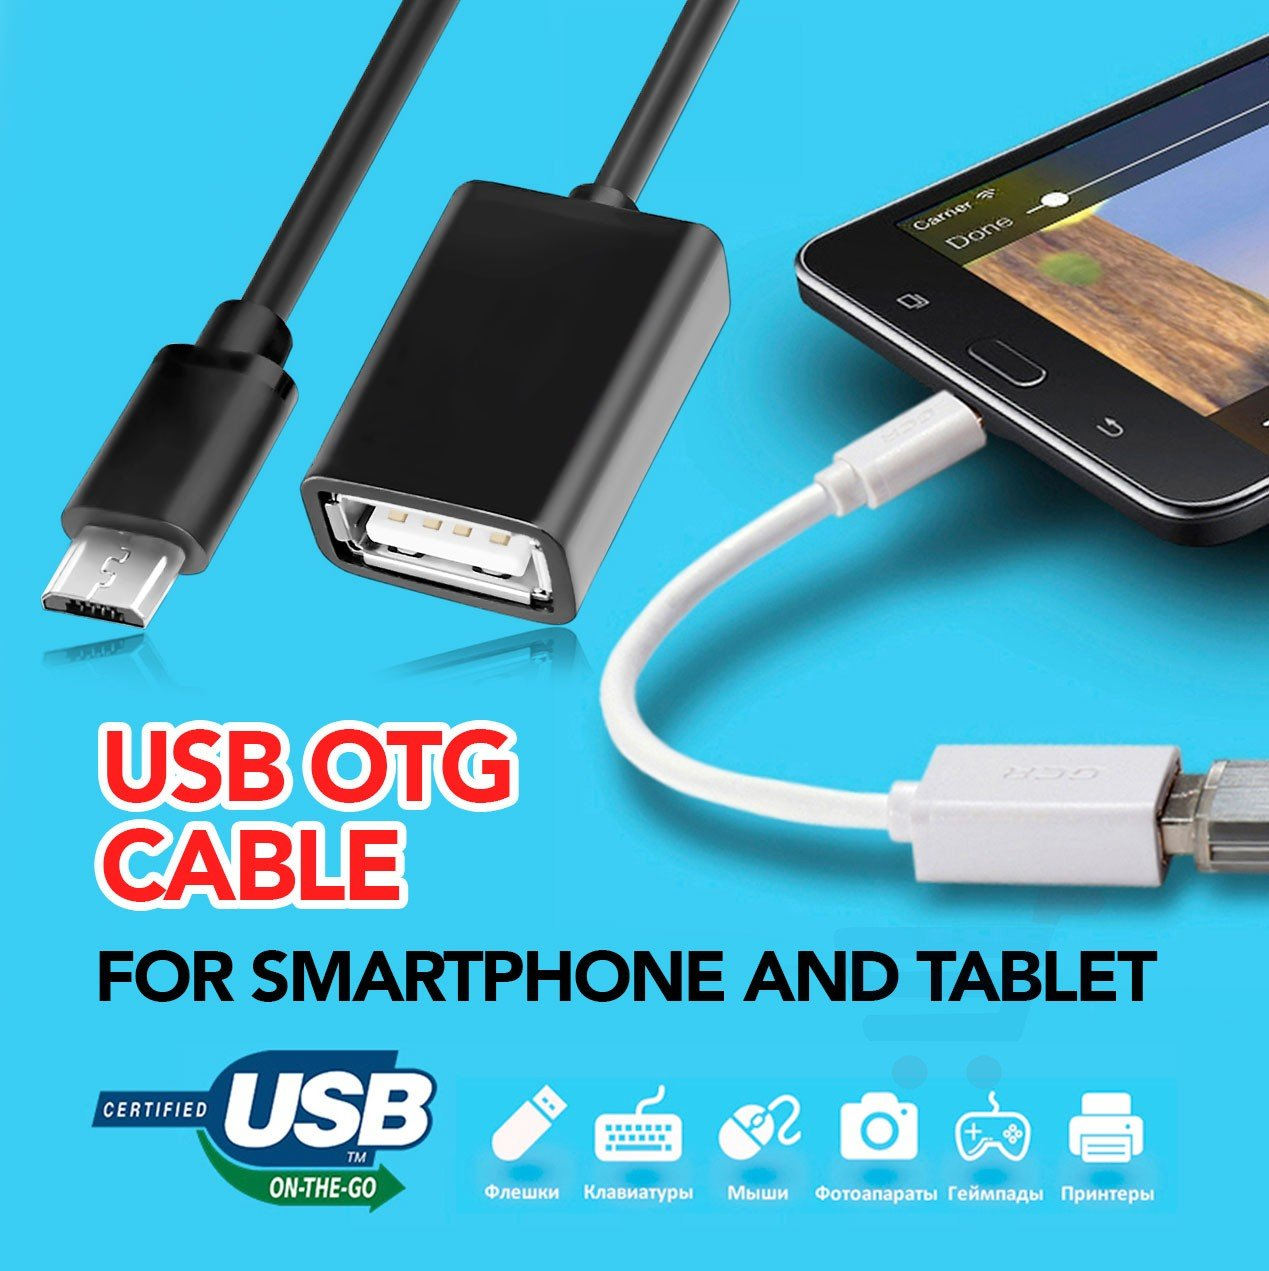 Buy Usb Otg Cable Online Dubai Uae 7983 Wiring For Smartphone And Tablet